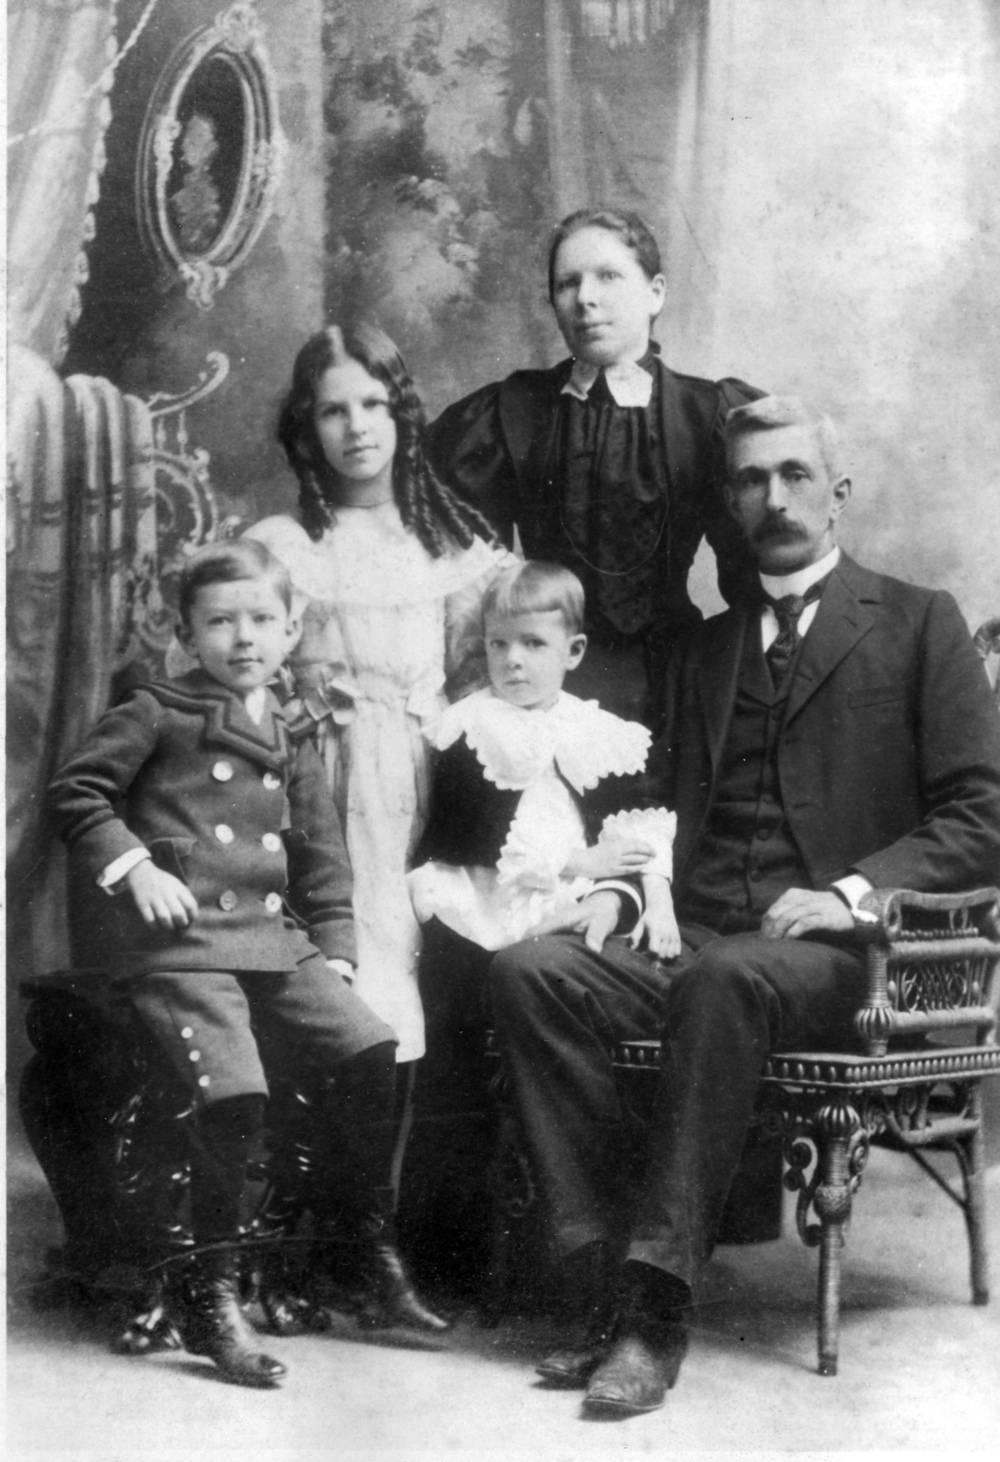 Paul, Marcia, Philip, Deborah and William Furnas in 1896